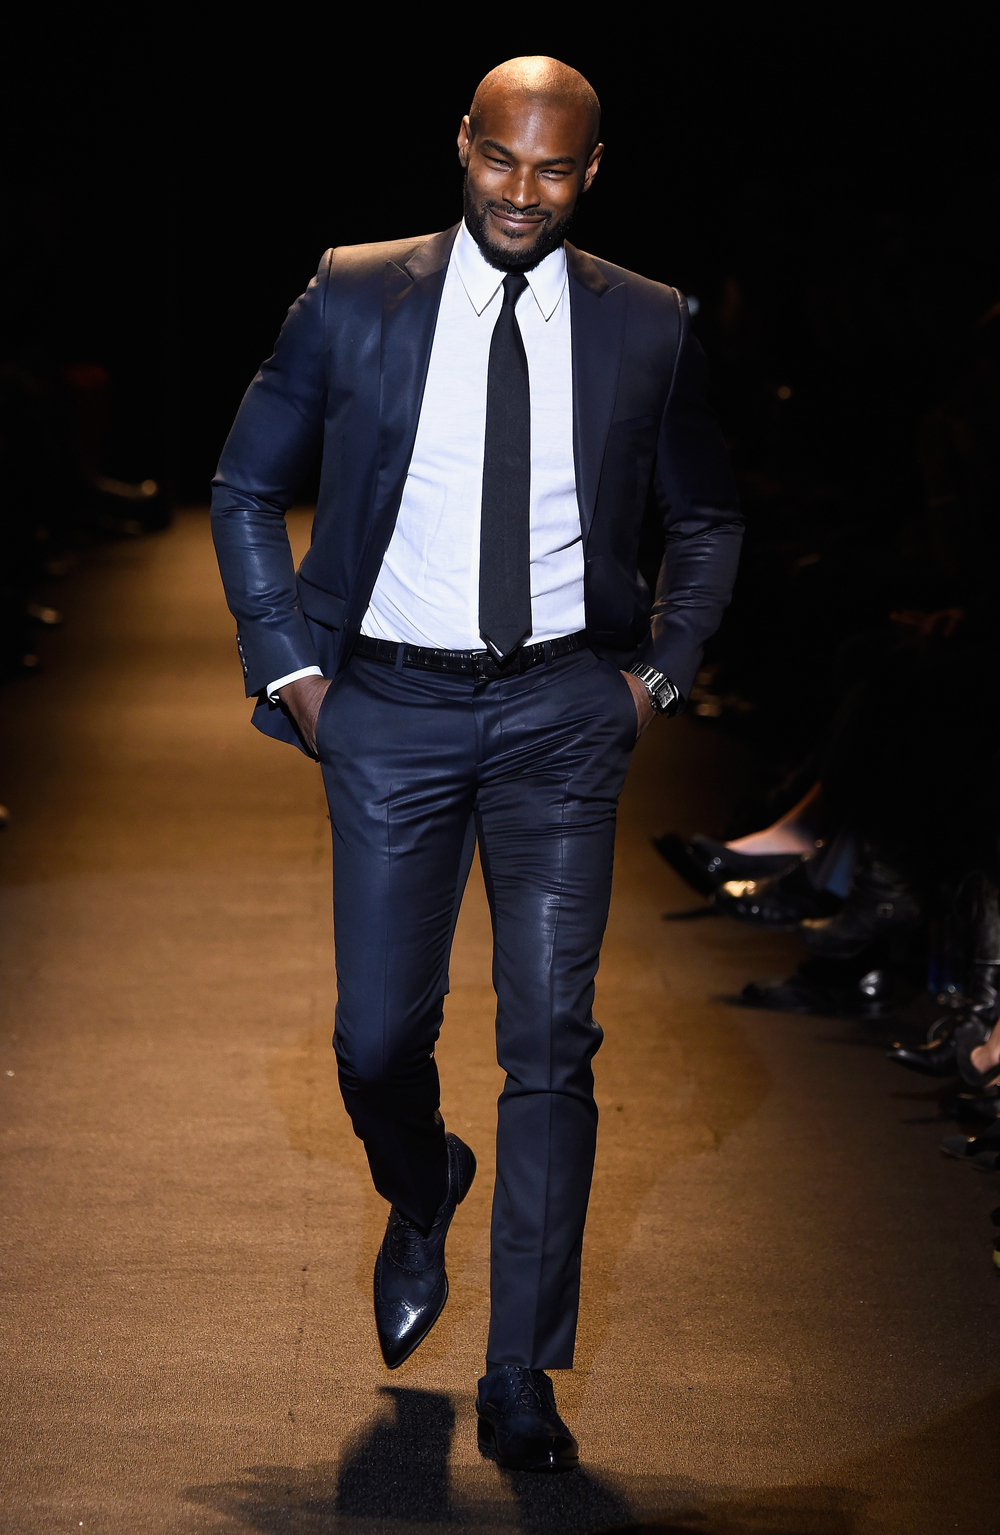 Tyson Beckford Joins the Chippendales as Celebrity Guest Host